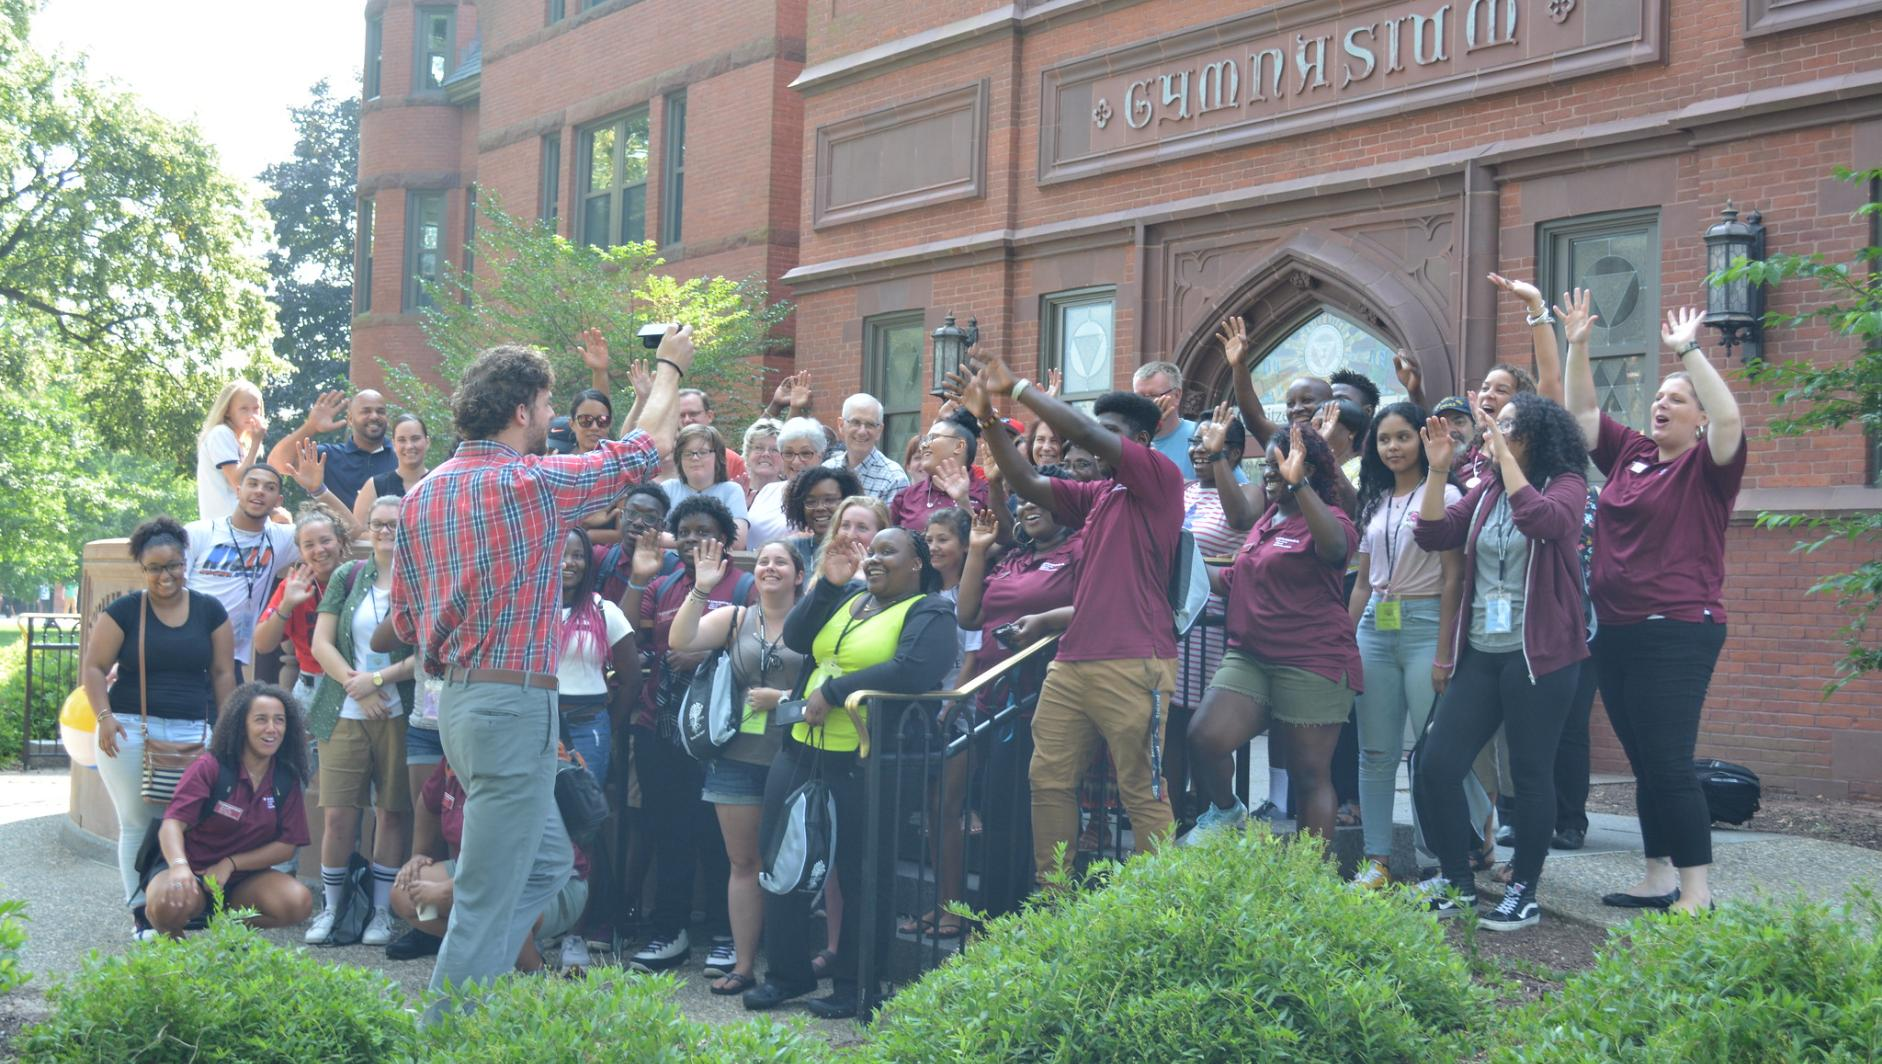 Cultural Connections group celebrates outside of Judd Gymnasium